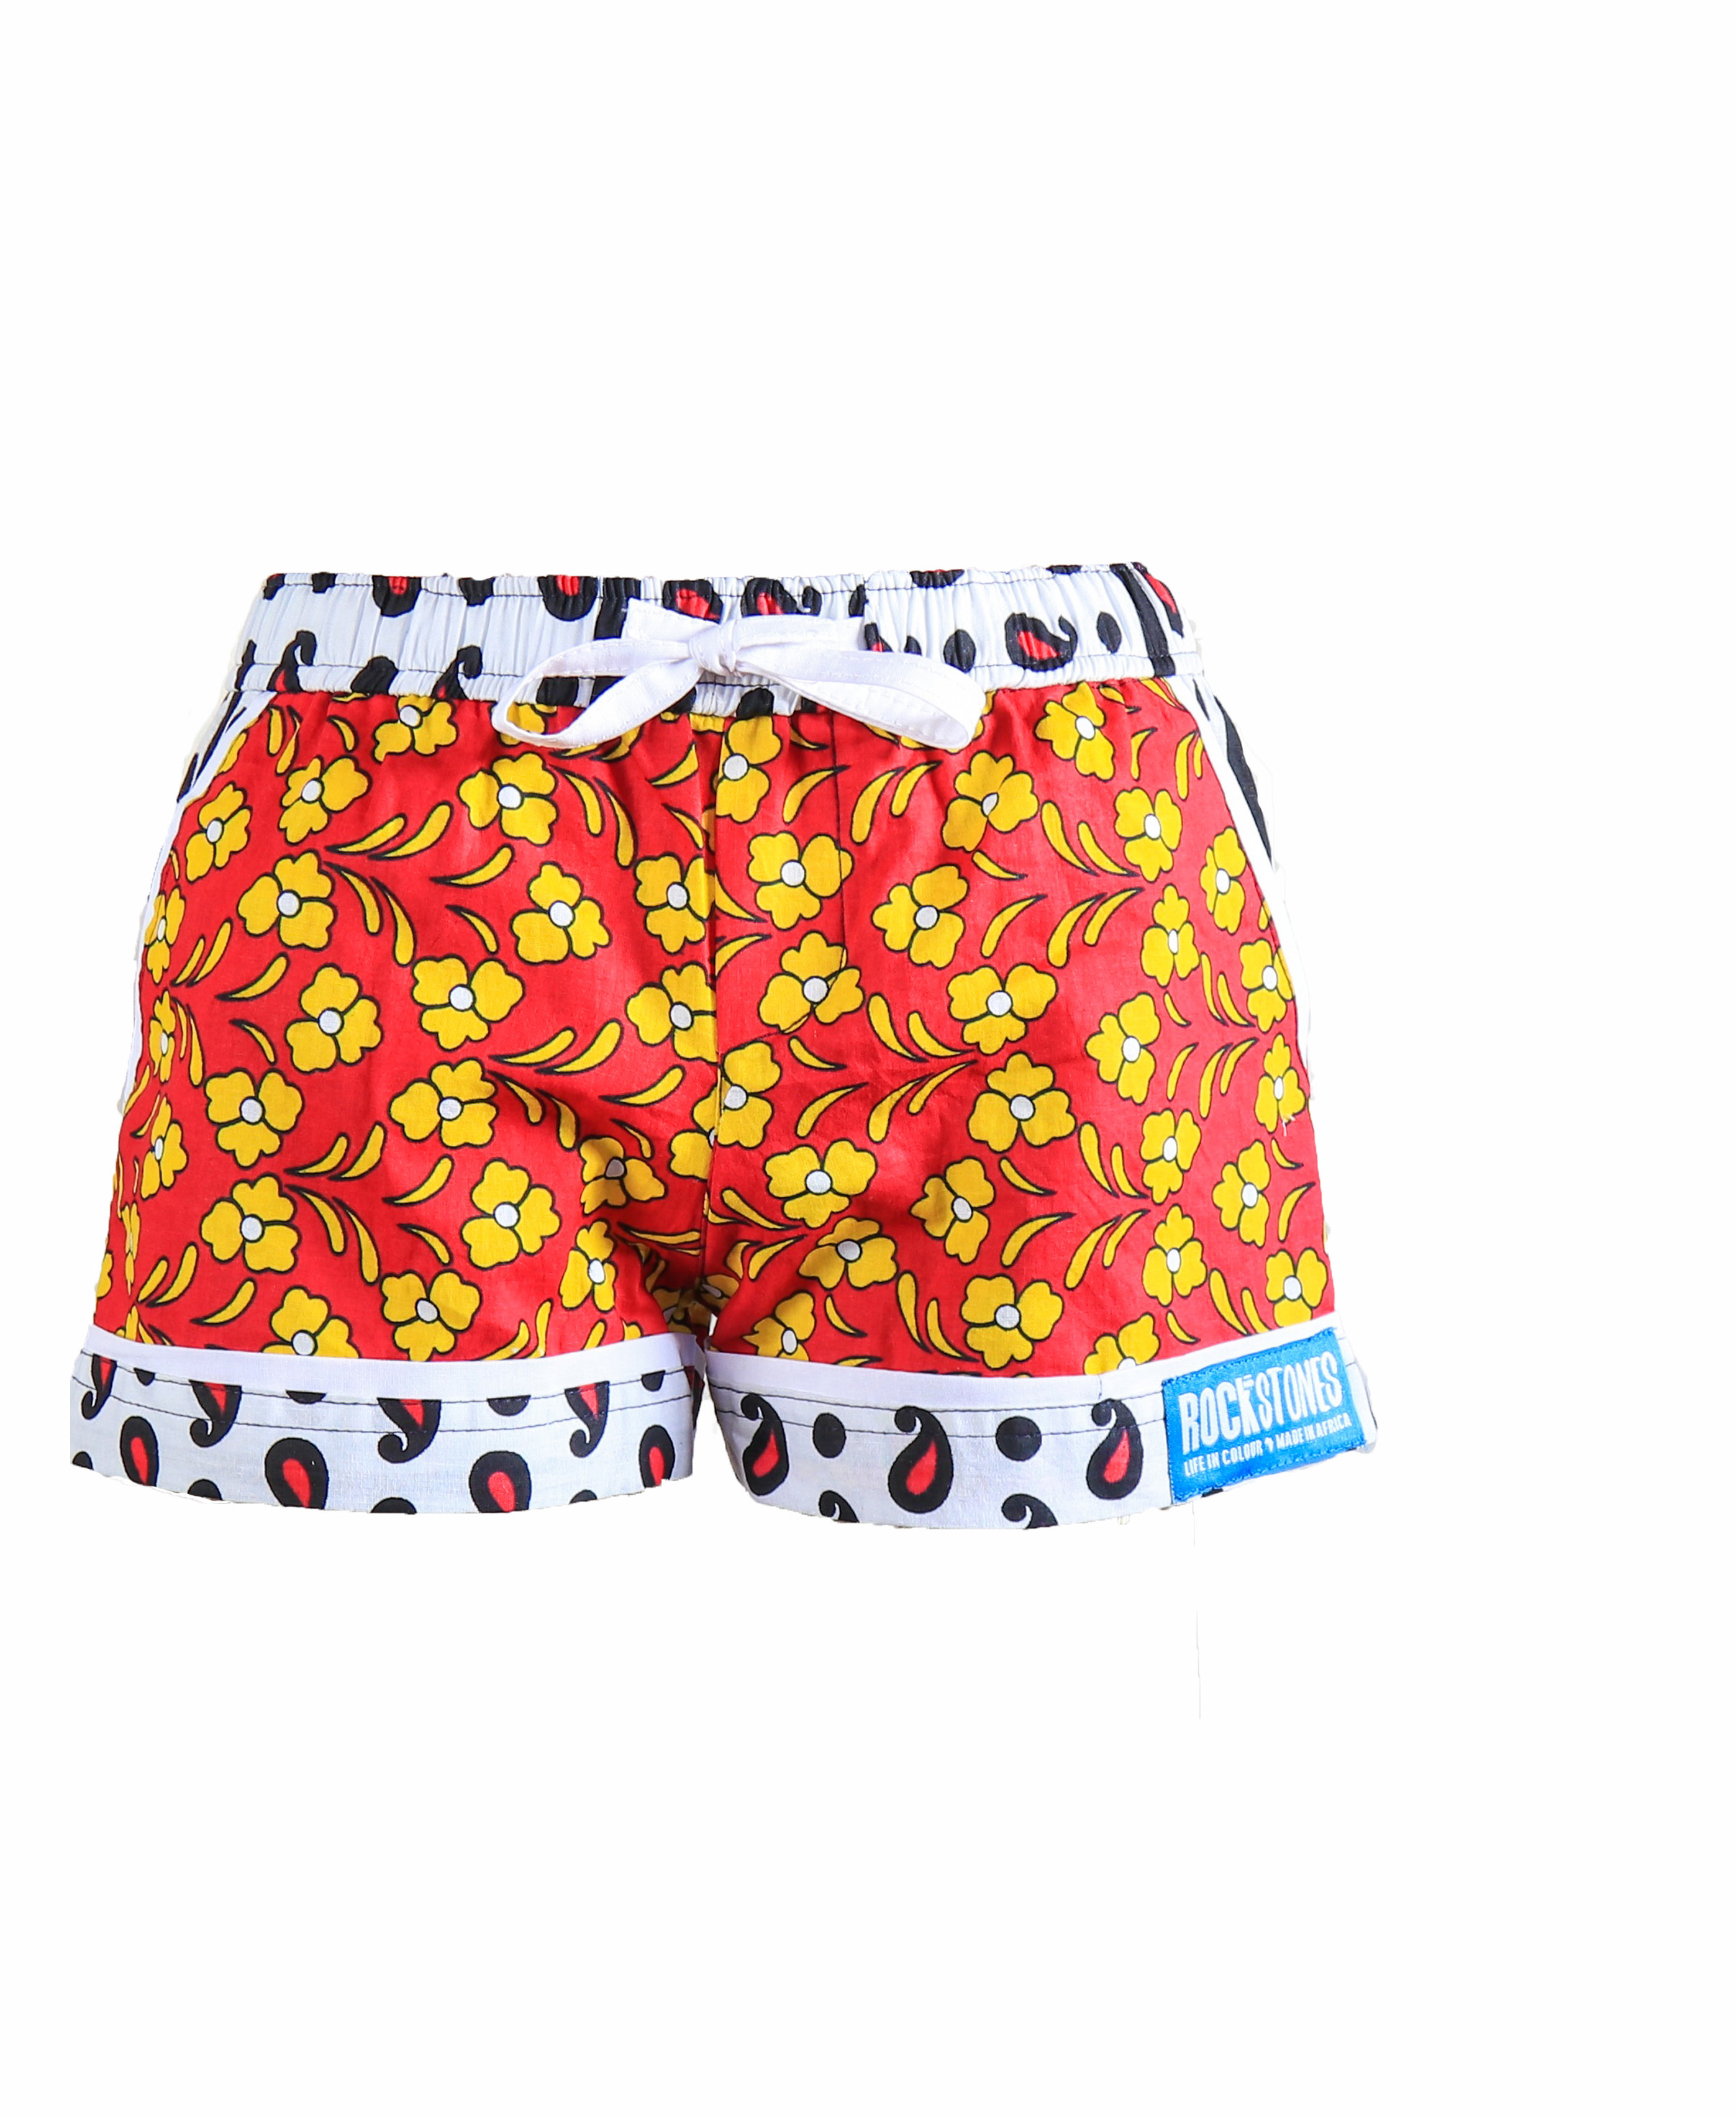 Rock and Stones Girls Beach and Bush Shorts Red & Orange flowers 3